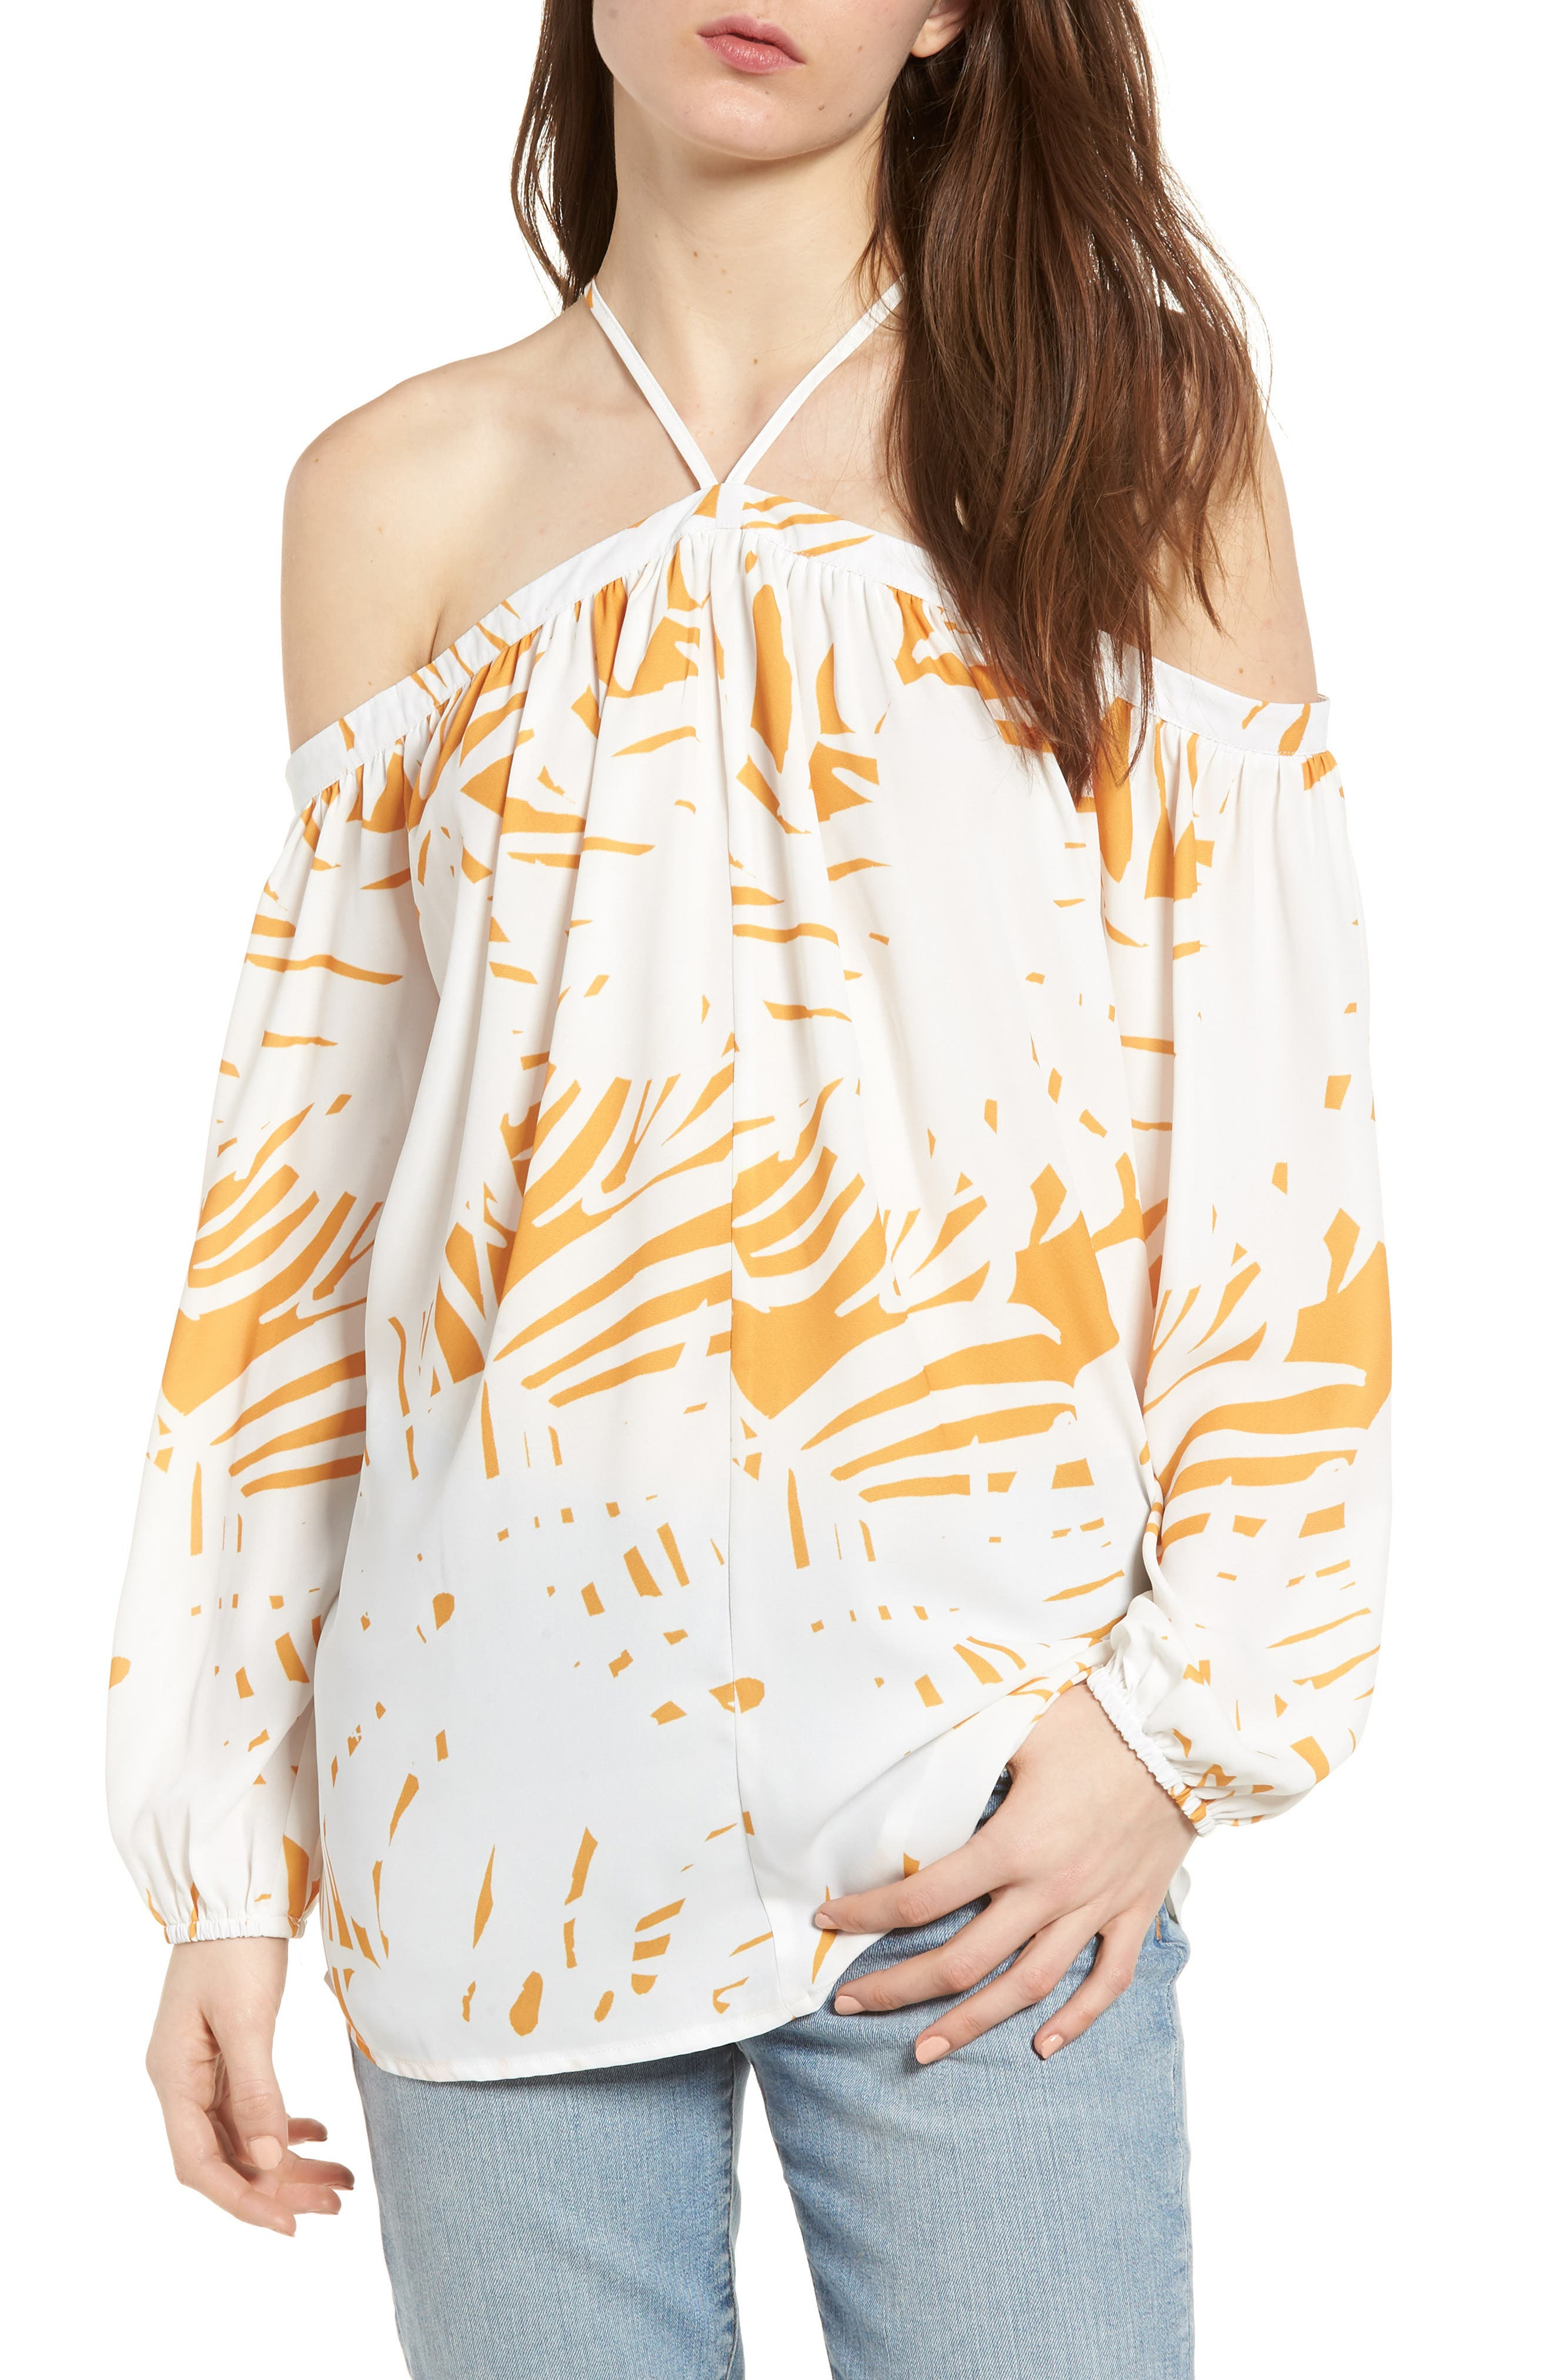 Bishop + Young Ana Palm Print Off the Shoulder Top,                         Main,                         color, 400